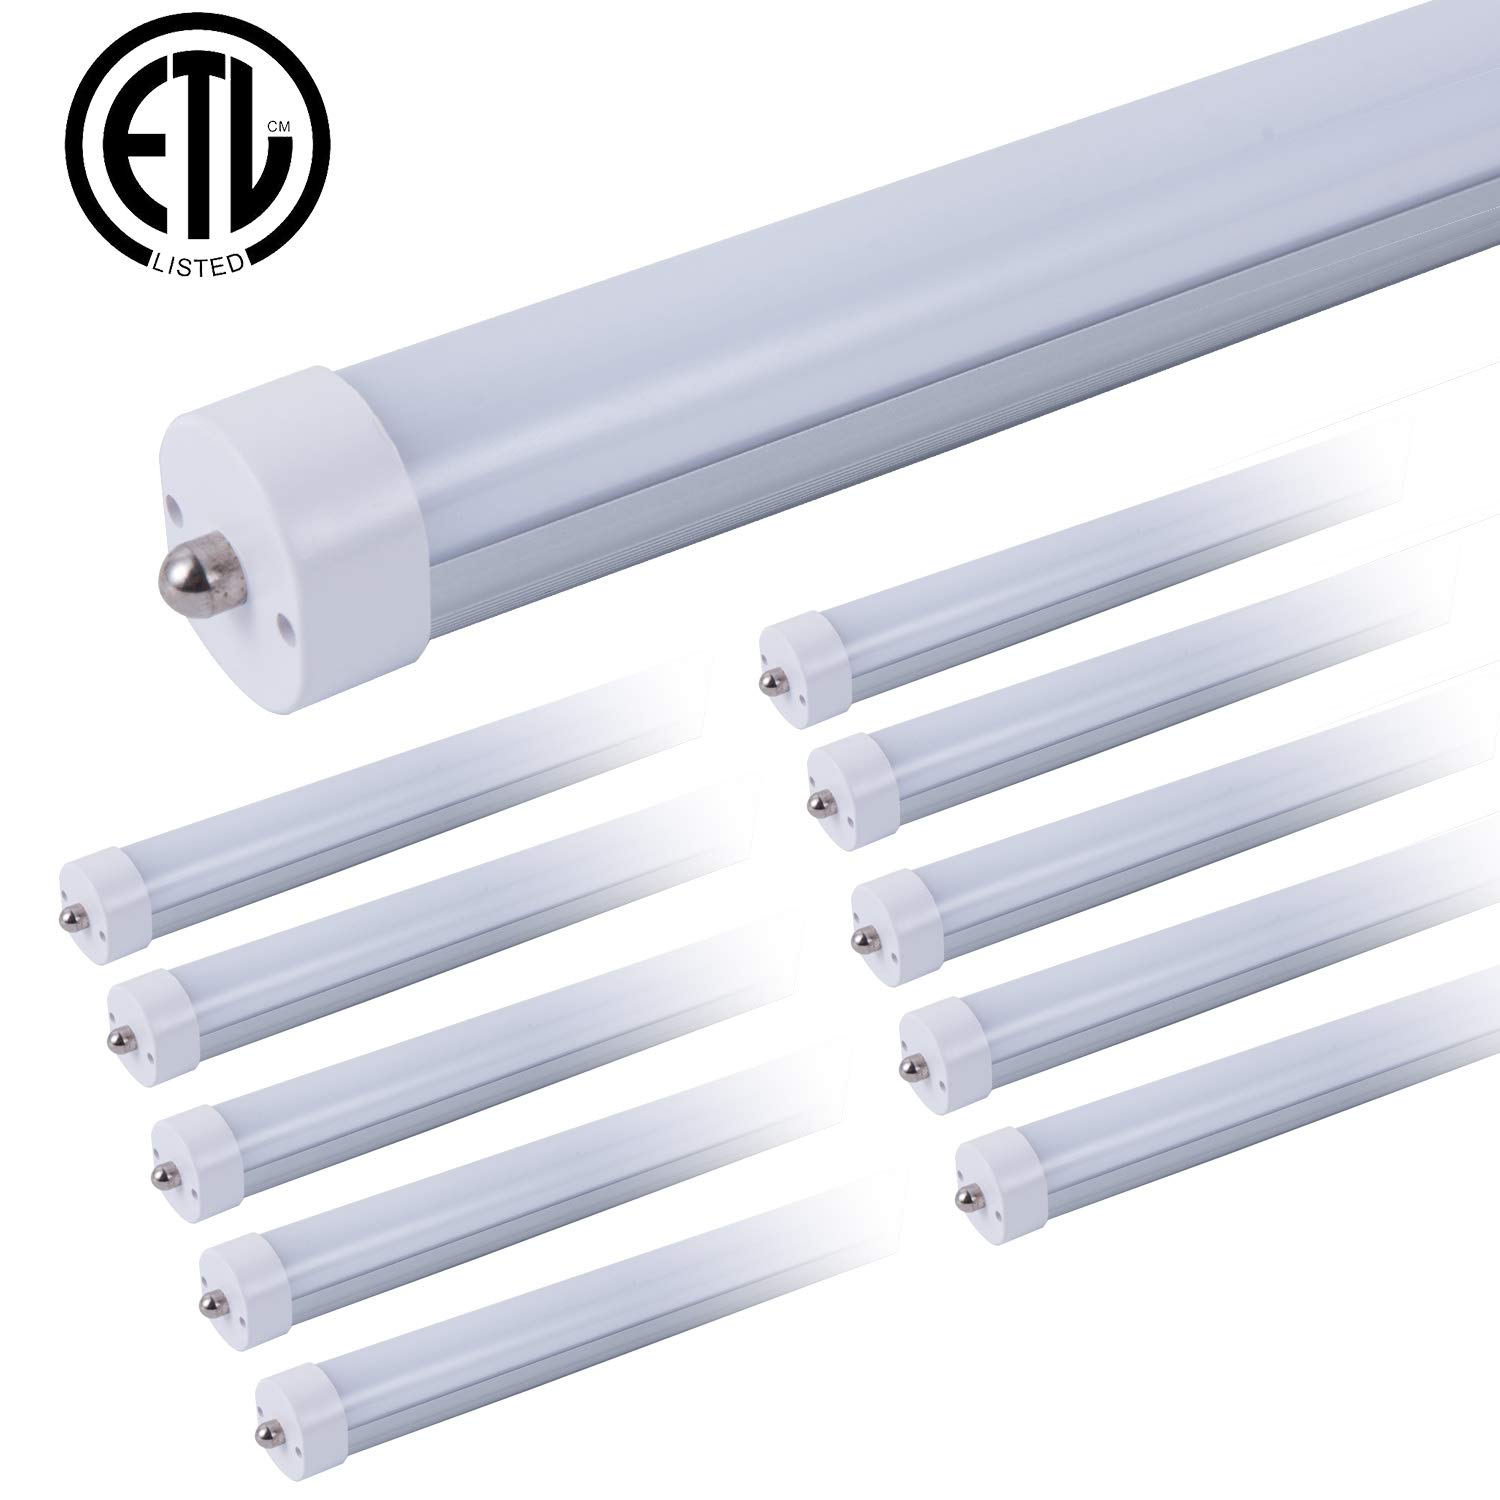 ETL T8 T12 LED 8ft Tube Light F96T8 F96T12 LED Bulb 96'' FA8 Single Pin LED Fluorescent Replacement, ONLYLUX (100W Fluorescent Equivalent), AC85-277V, 6500K CW Daylight Milky Cover, 10 Pack by ONLYLUX (Image #1)